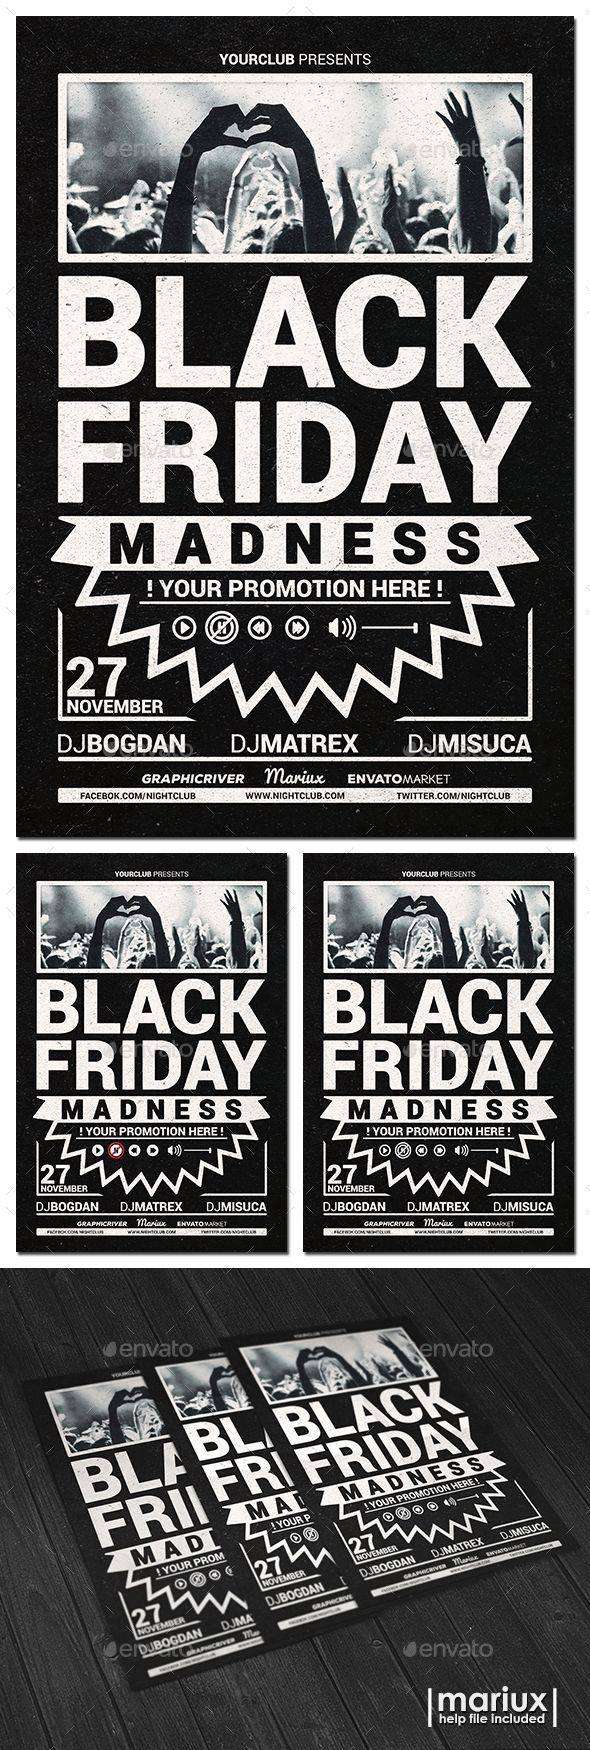 Wann Black Friday Pin By Best Graphic Design On Flyer Templates Pinterest Flyer